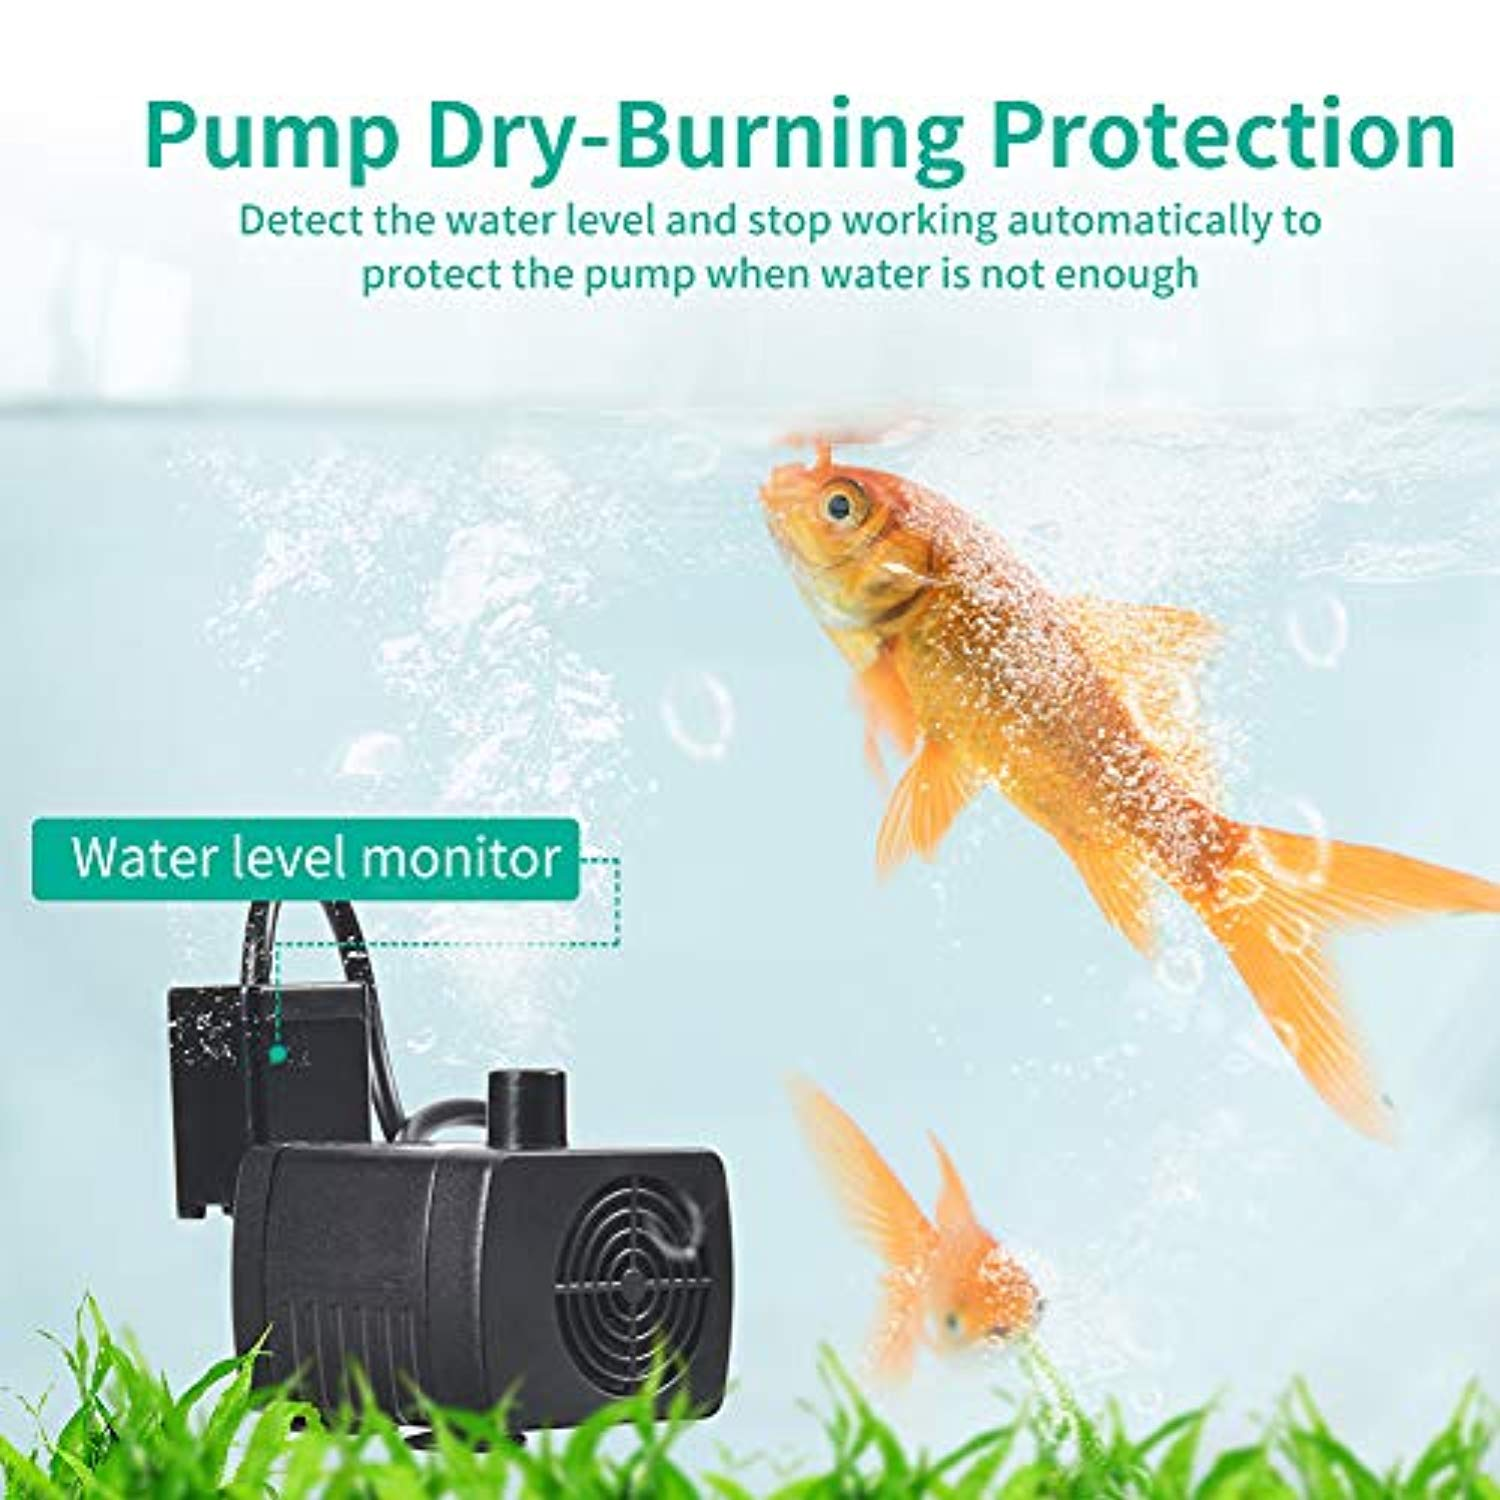 Ankway Little Water Pump 6.5ft/2M USB Cord, Ultra Quiet Submersible Water Pump with Anti-Dry Protection Mini Submersible Water Pumping for Aquarium Fish Tank Fountain Hydroponics Statuary